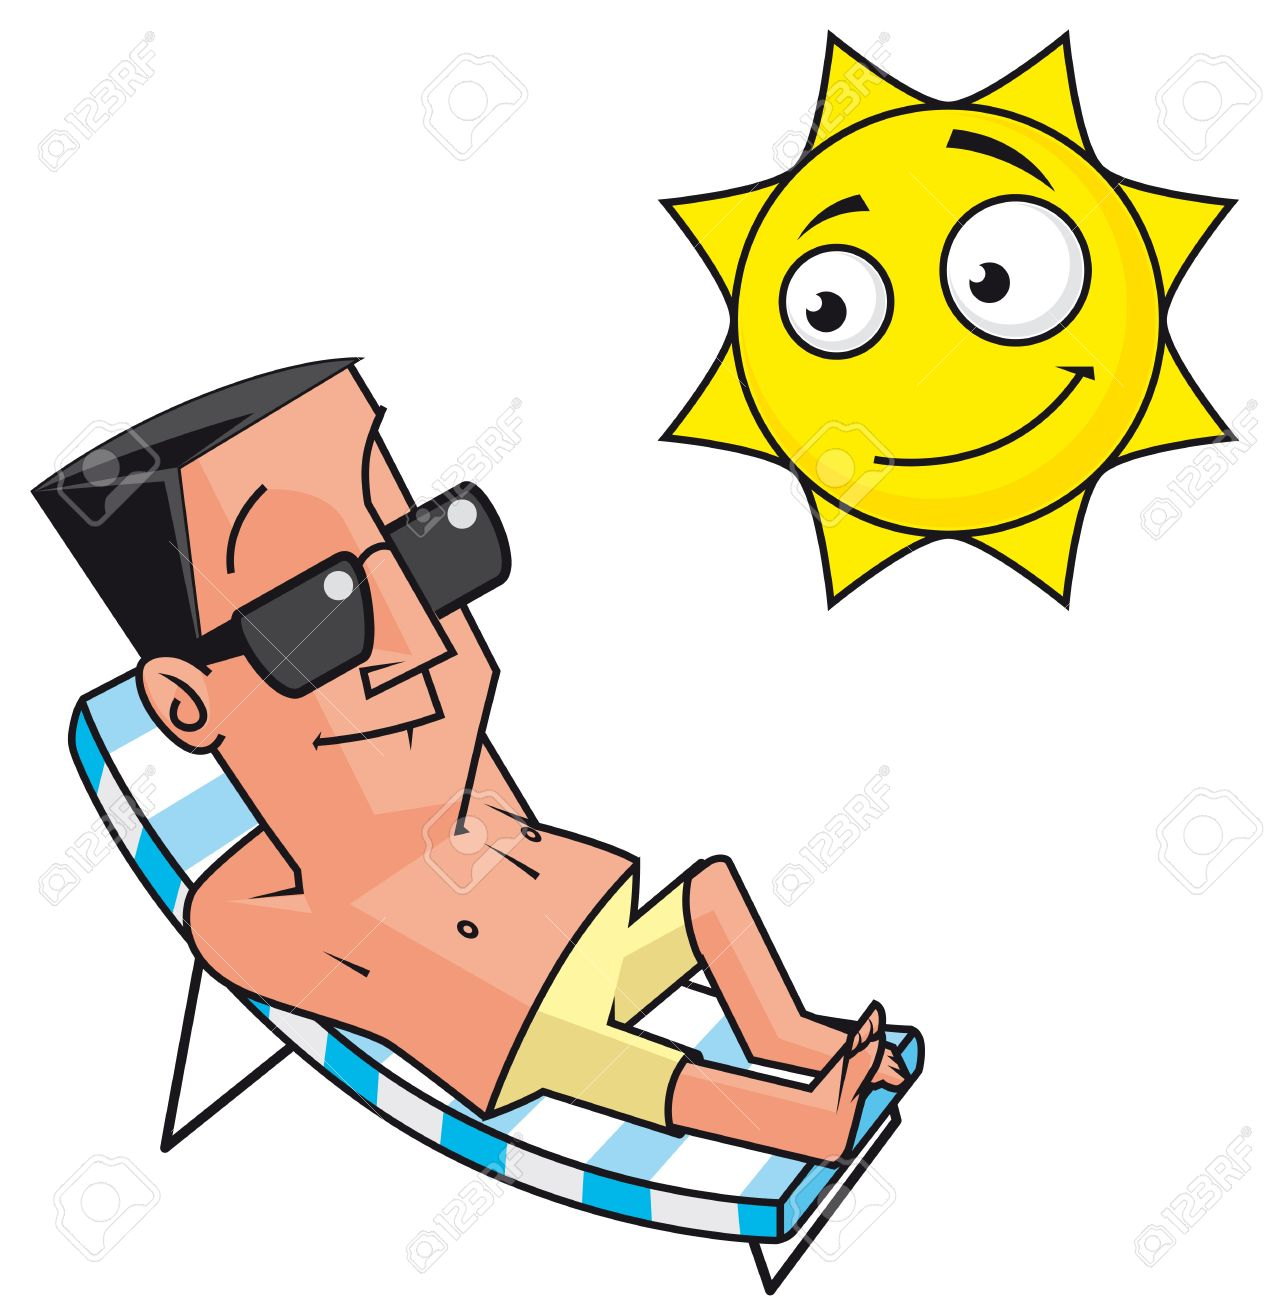 Sunbathing clipart png free download Sunbathing Clipart | Free download best Sunbathing Clipart on ... png free download